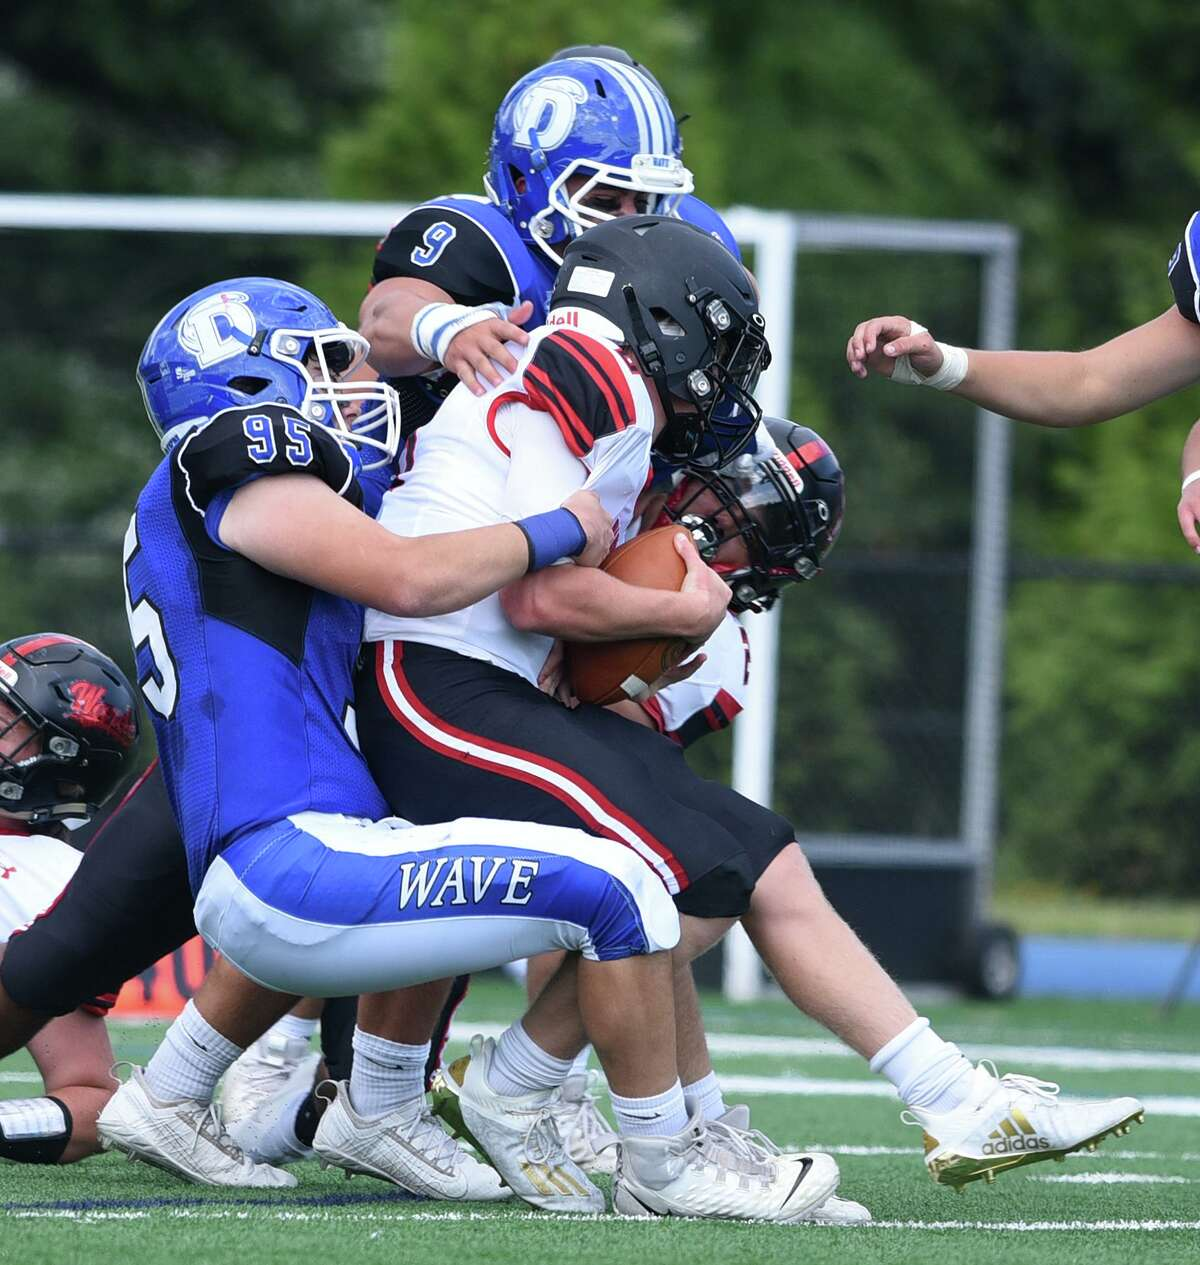 Darien's Kyle Santos (95) and David Evanchick (9) wrap up Warde's Charles Gulbin (8) during a football game at Darien High School on Sat., Sept. 11, 2021.